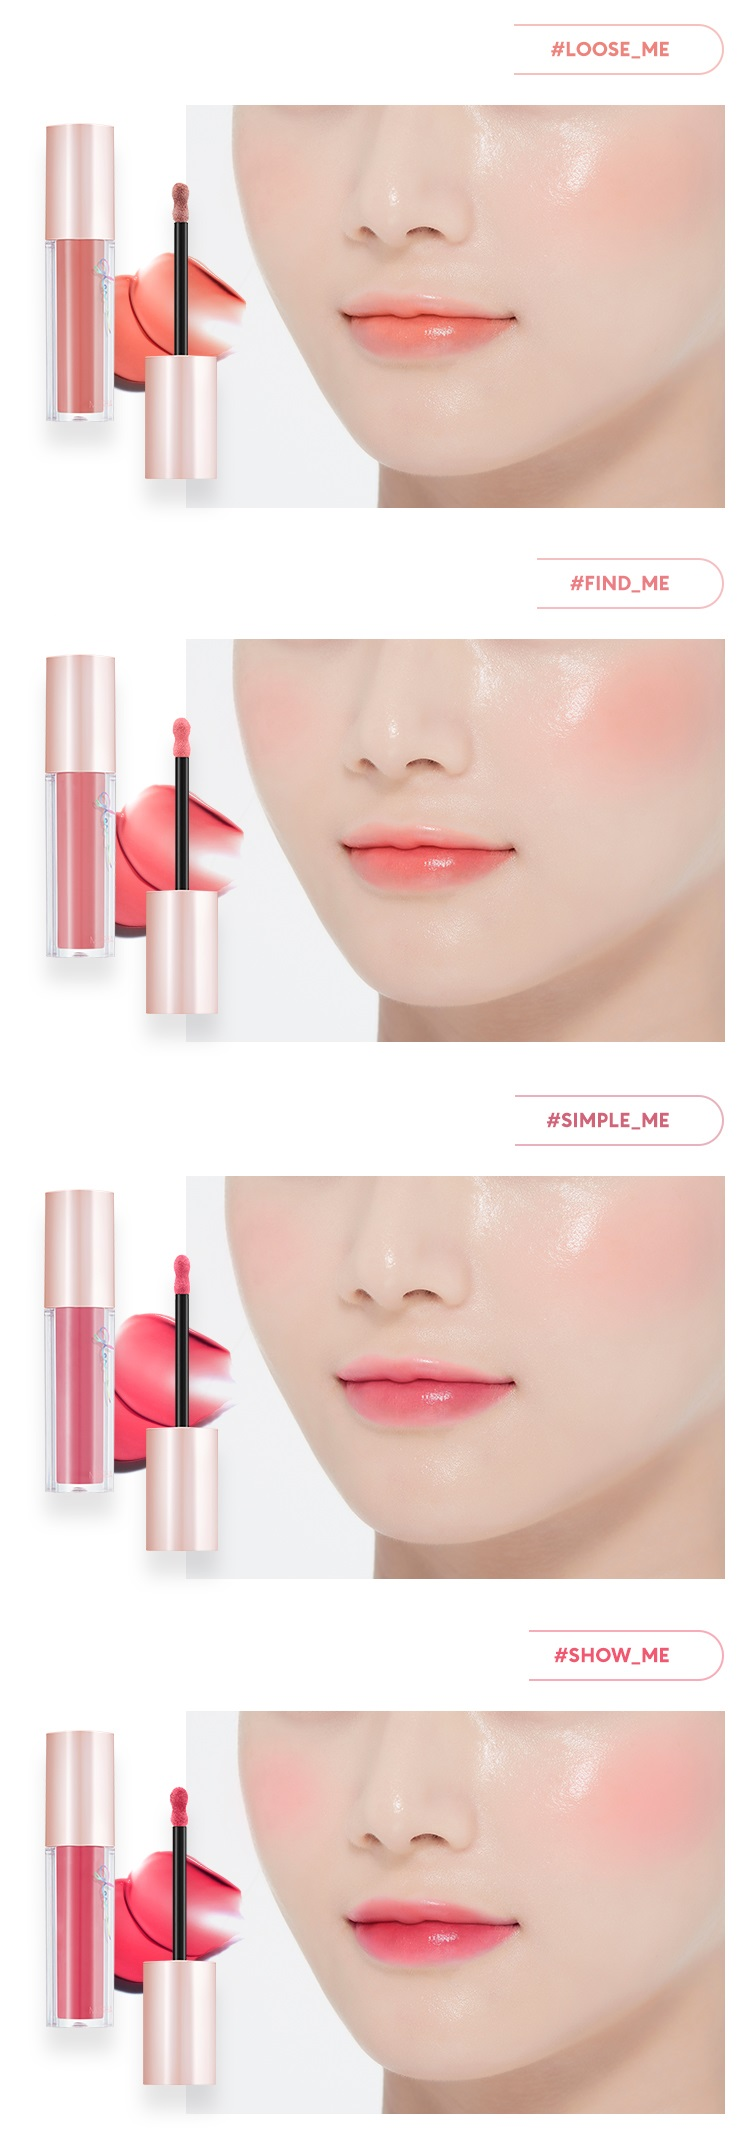 missha-glow-lip-blush-colors_2